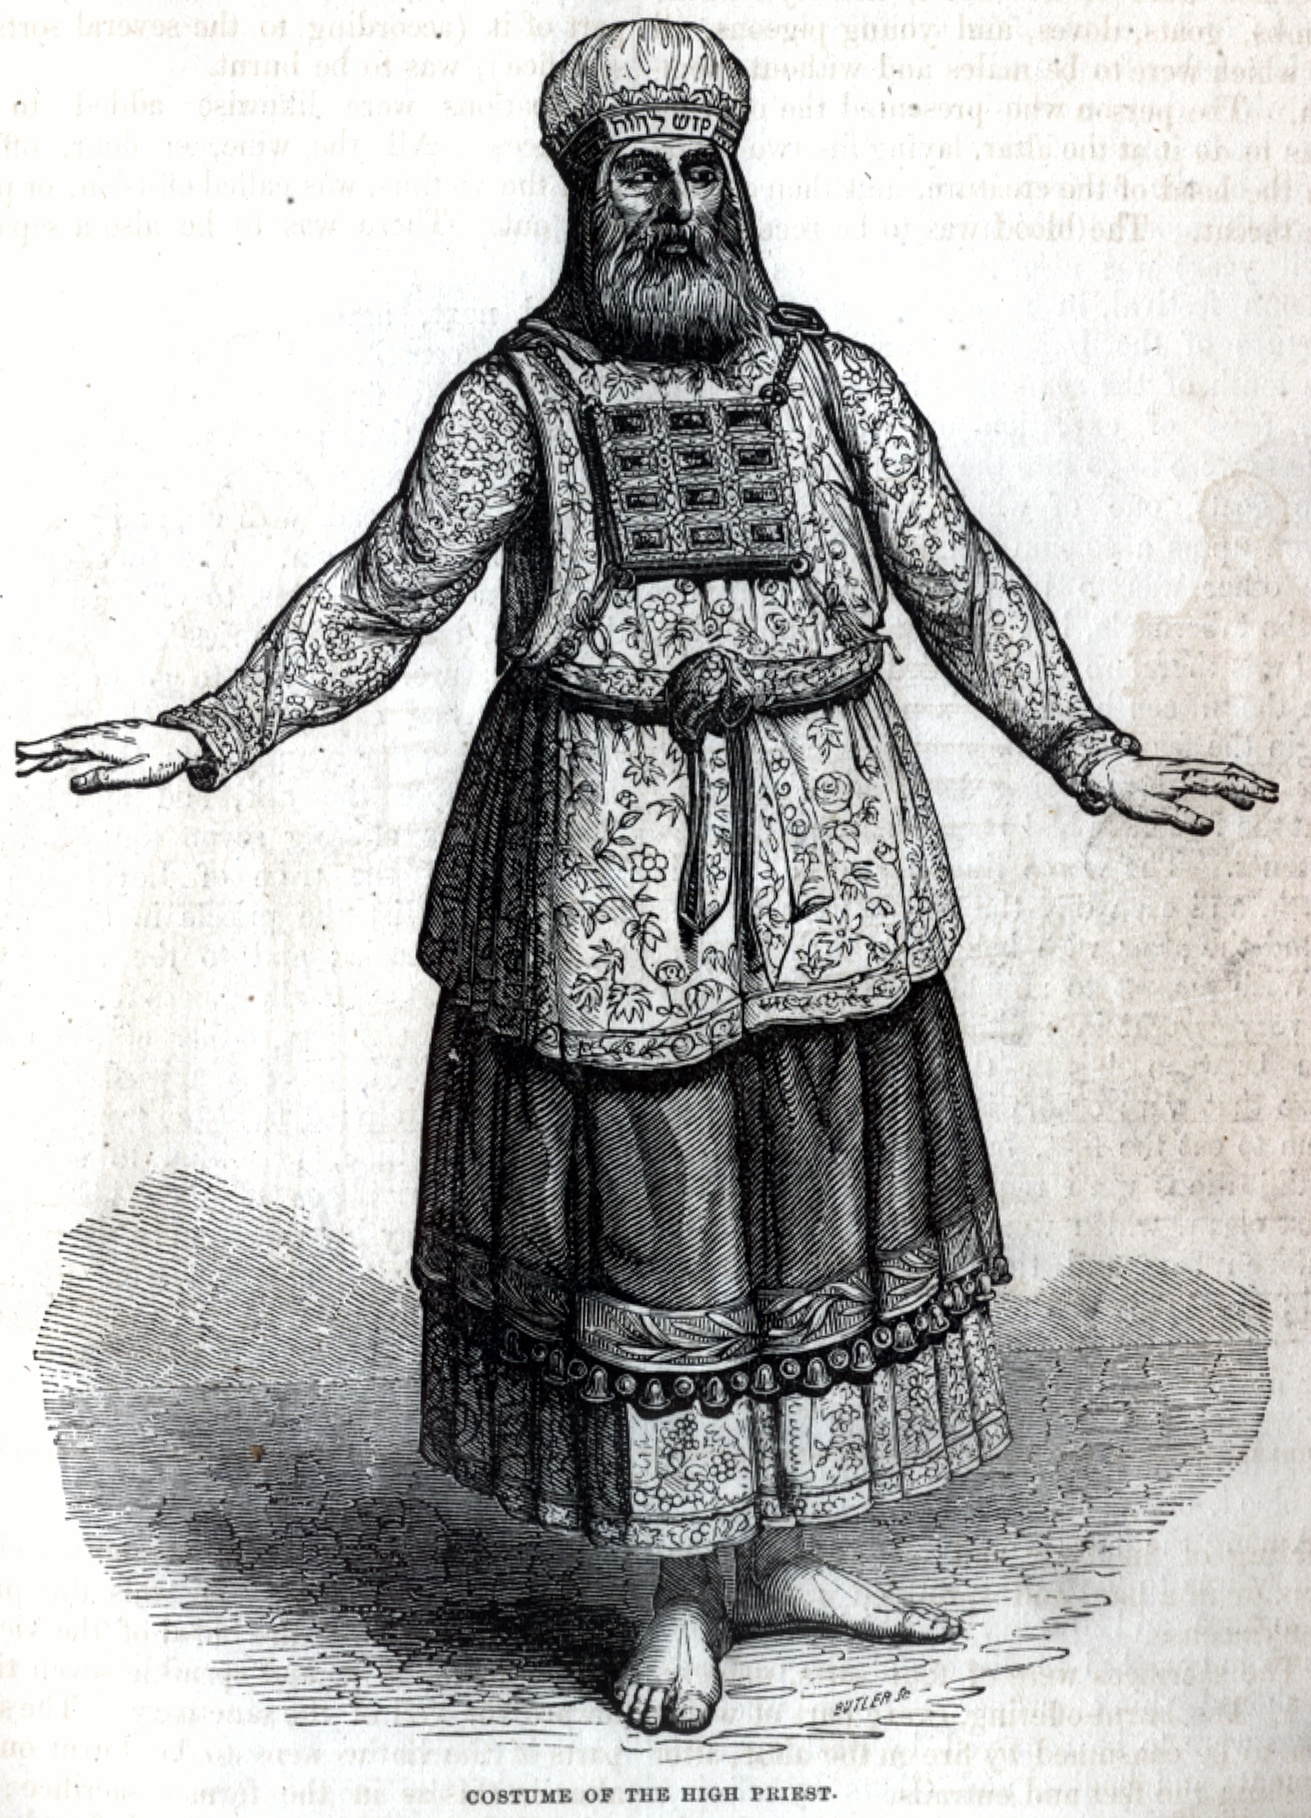 Costume of the High Priest